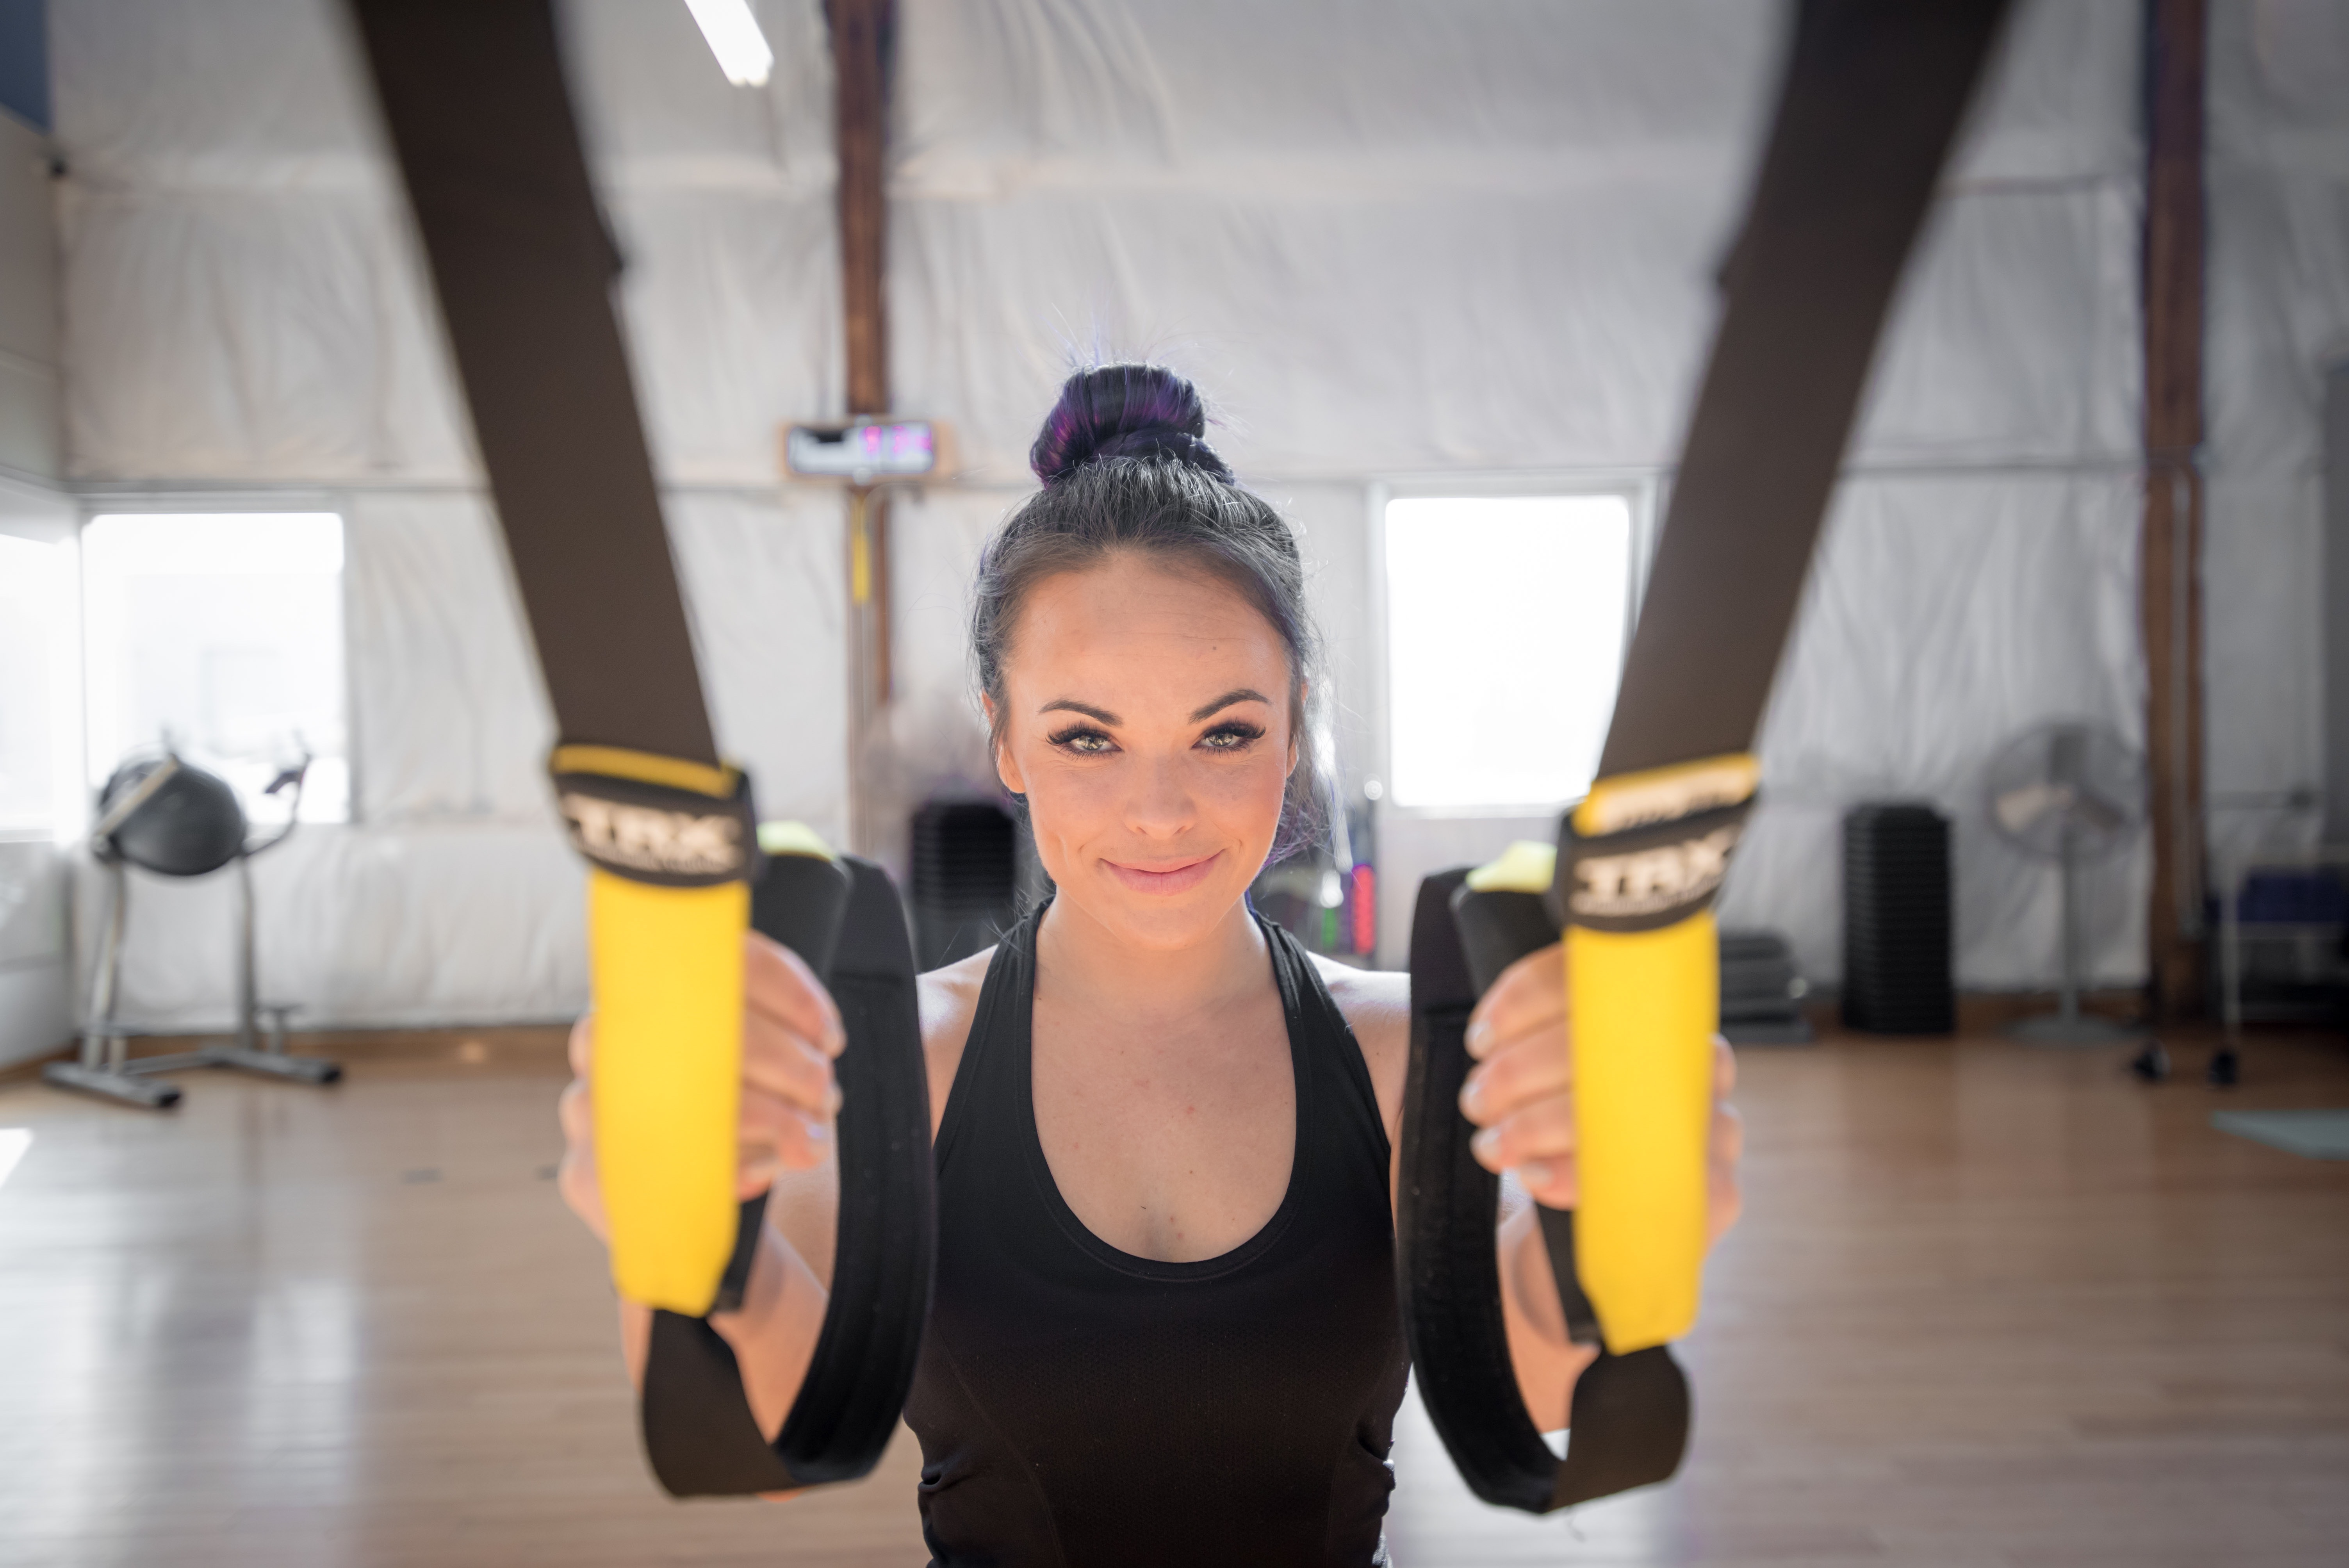 Daniella, Personal Trainer, On the Go, Fitness, Travel, Workout, Work Out, Online Training, TRX Band, How to, Blogger, Denver, Nutrition, Guide